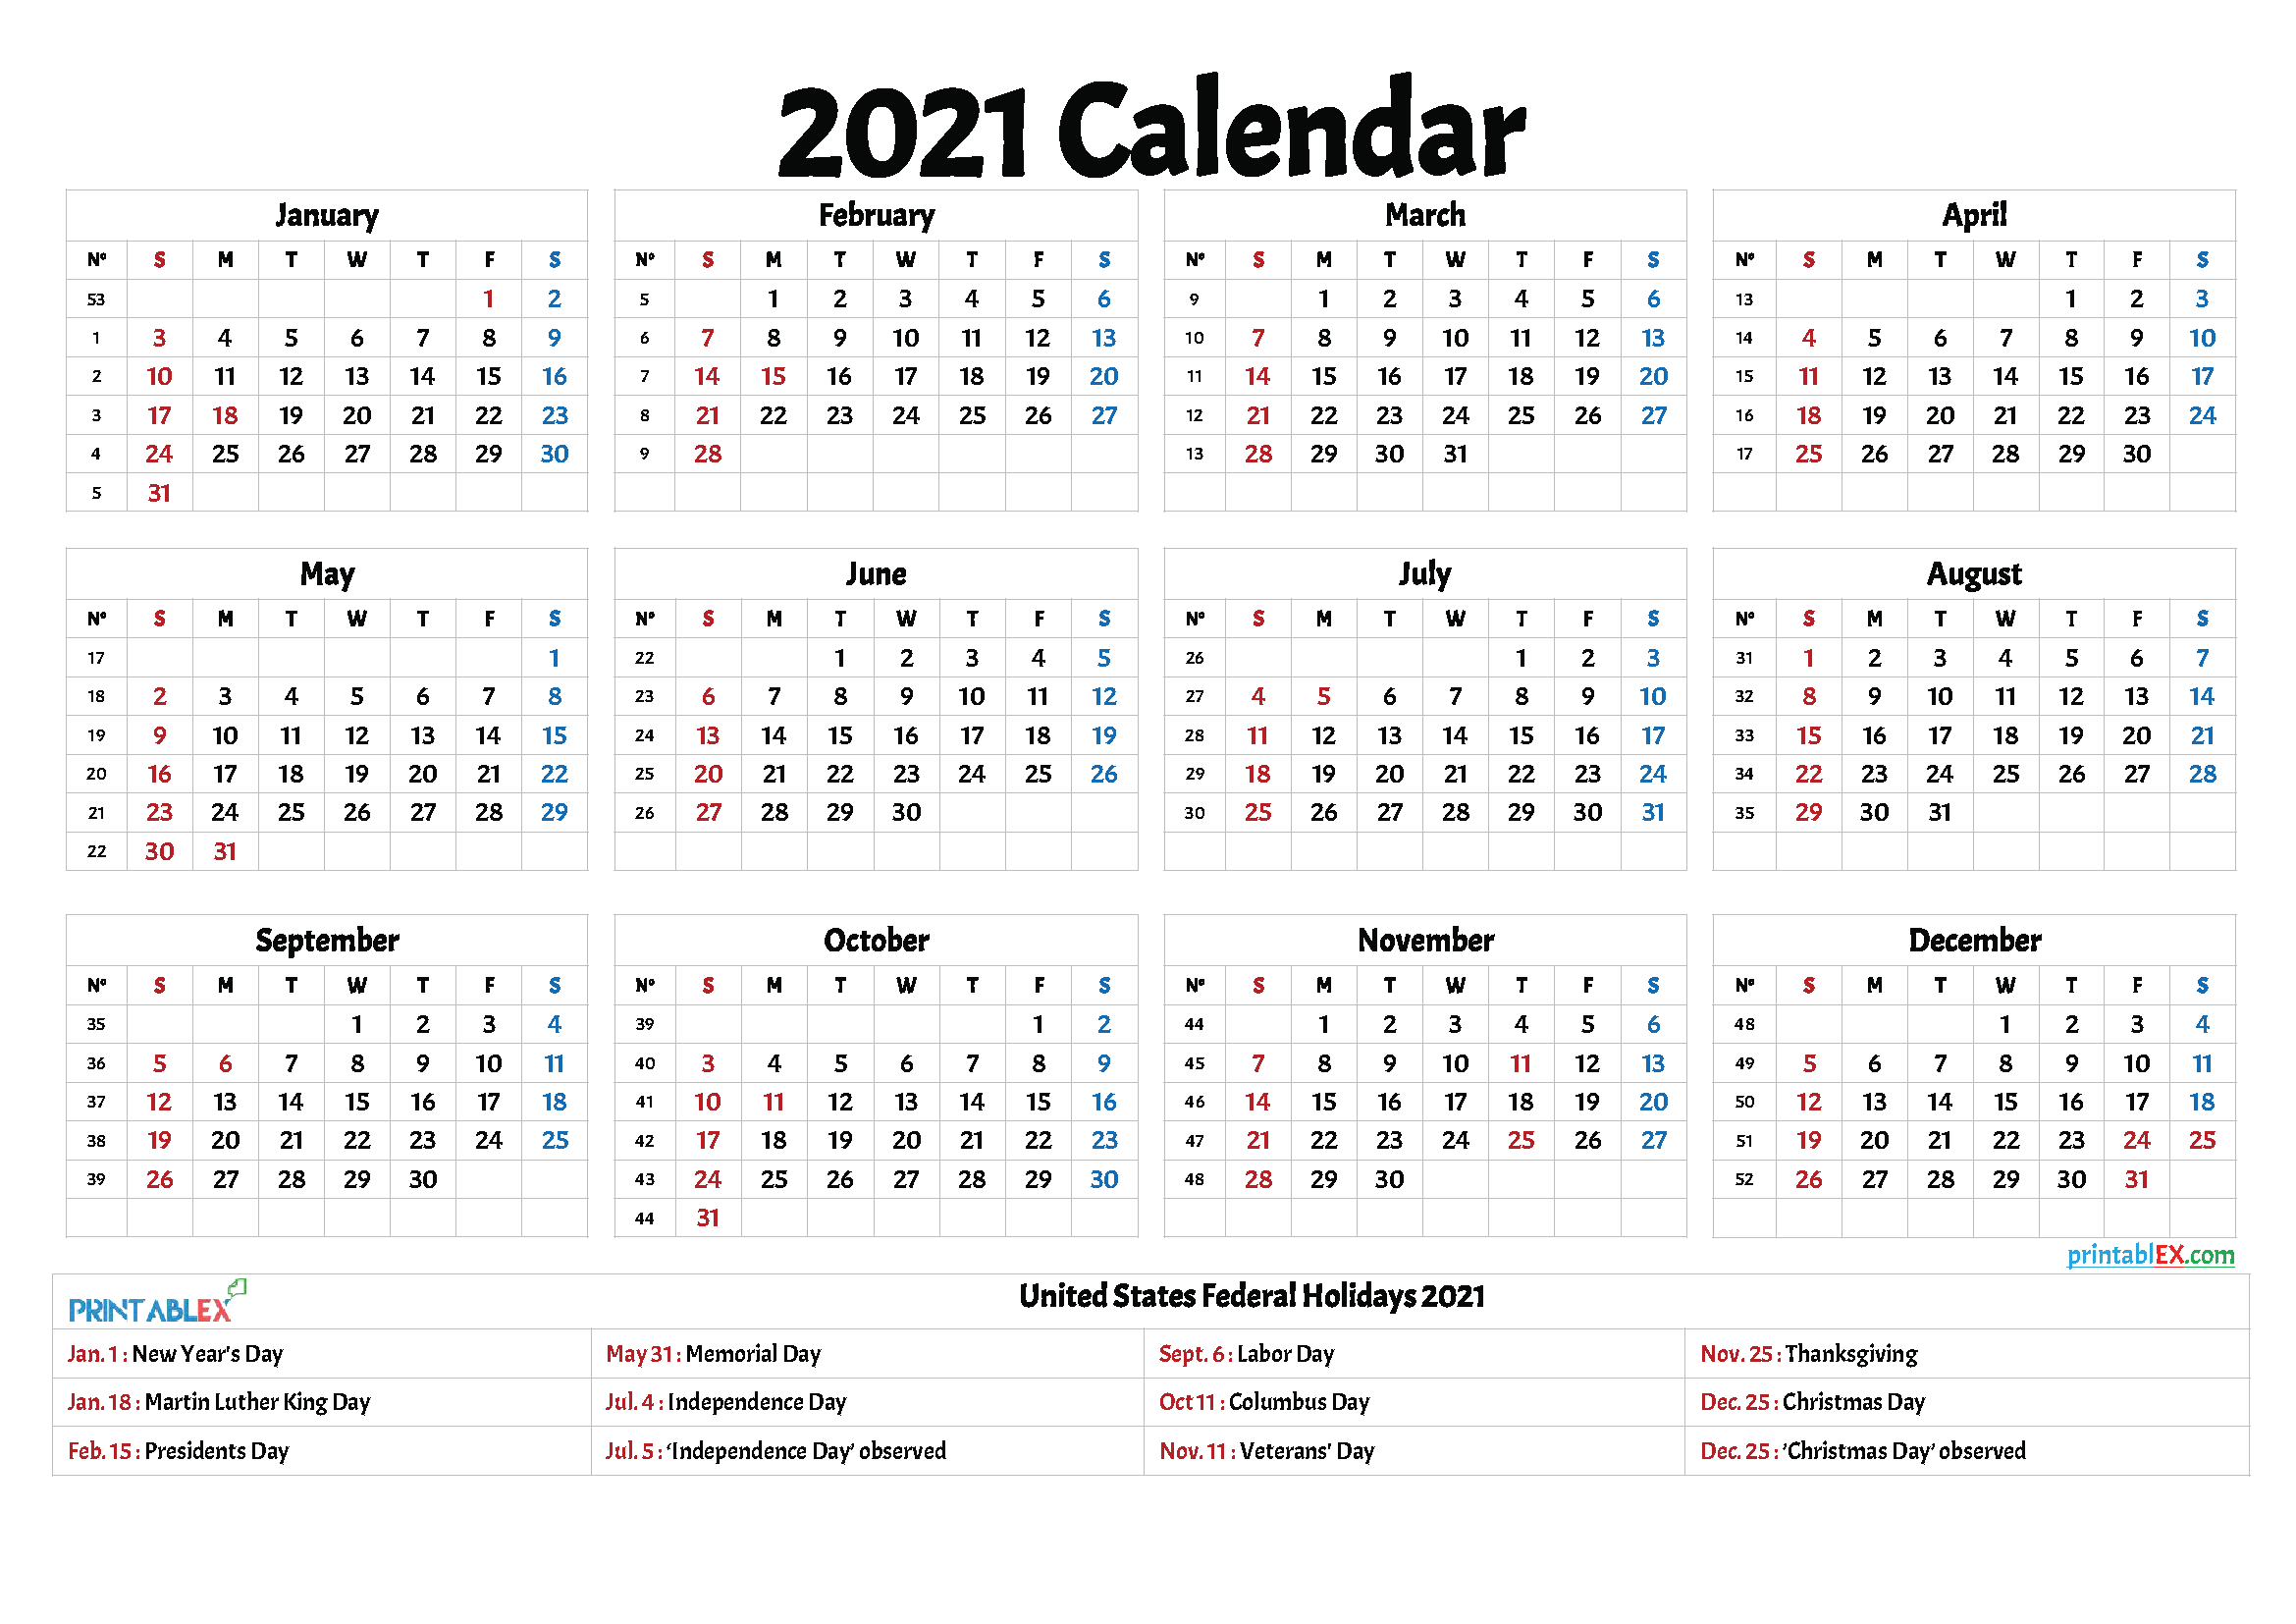 Yearly Calendar 2021 With Federal Holidays